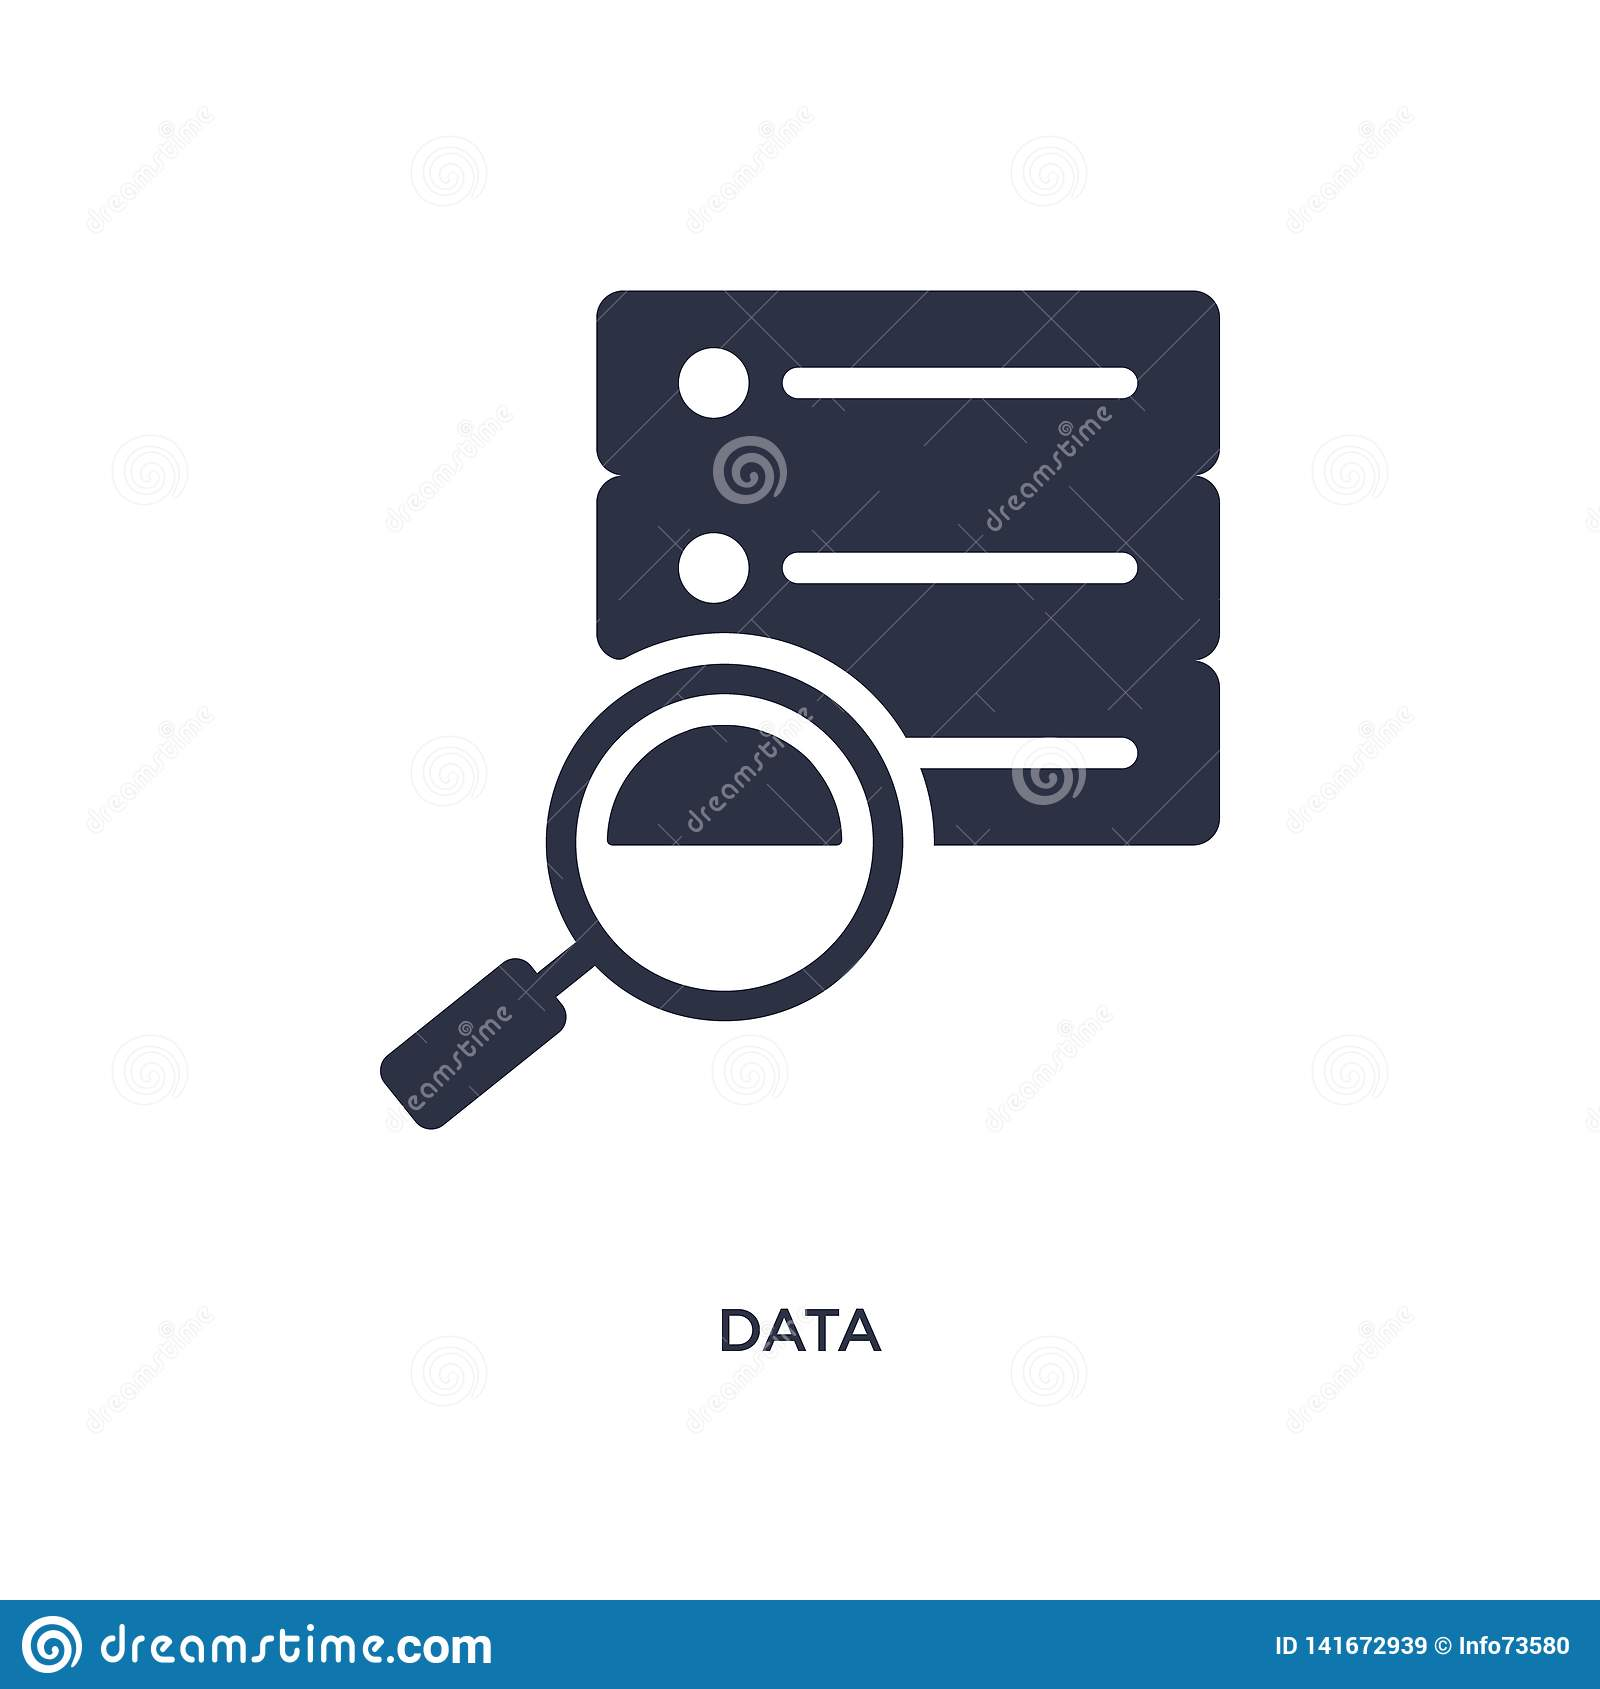 data icon on white background. Simple element illustration from strategy concept